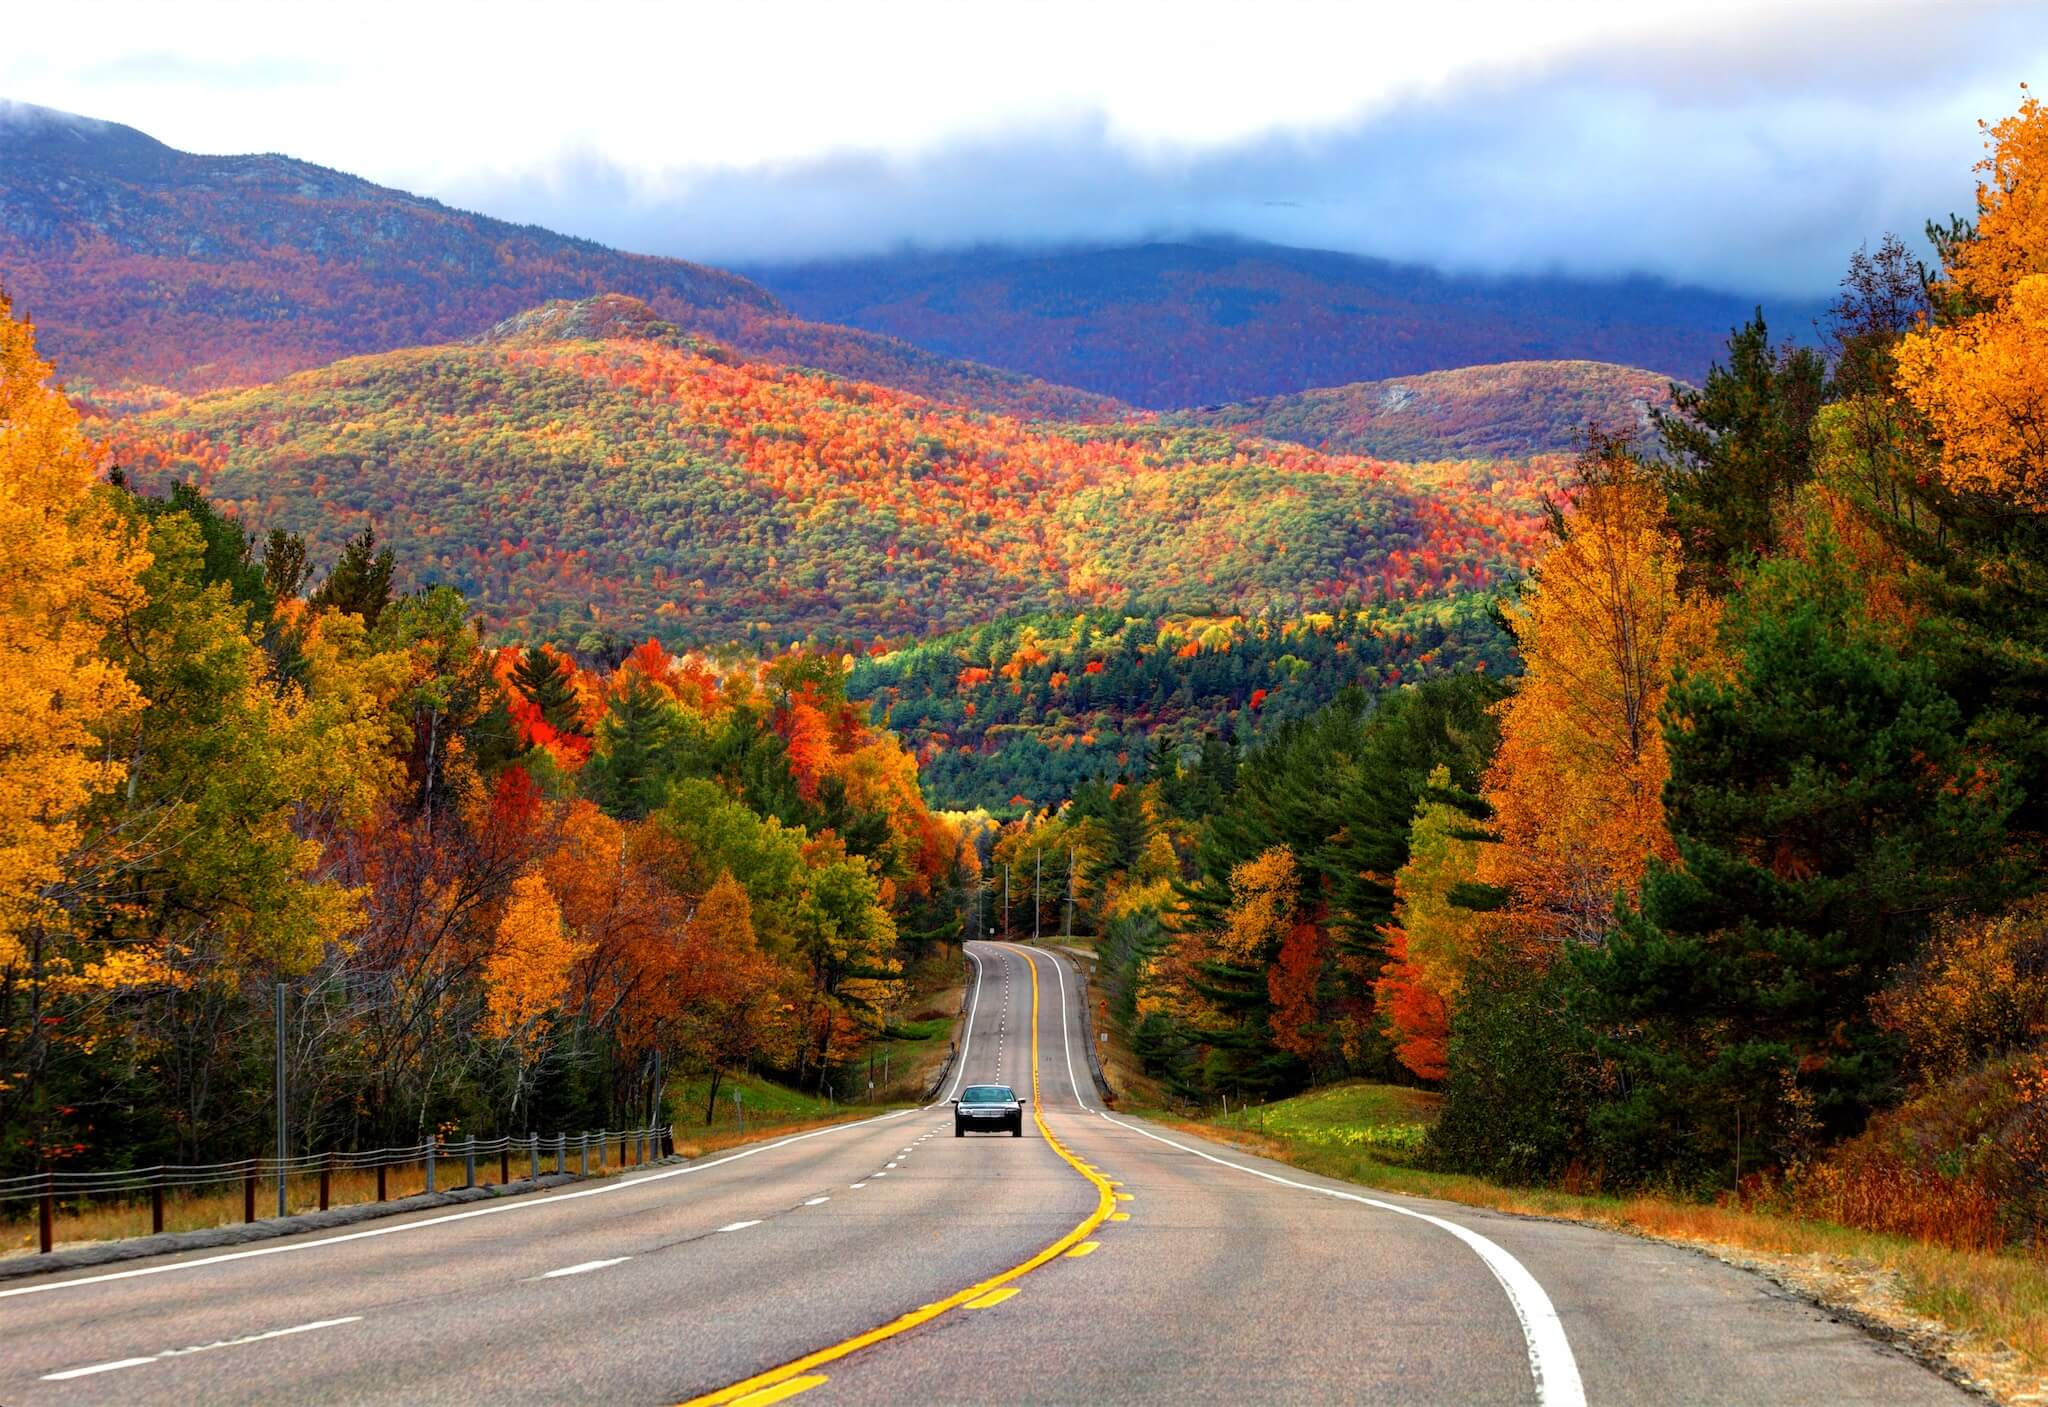 A road lined with trees during fall, when the leaves are changing colors.